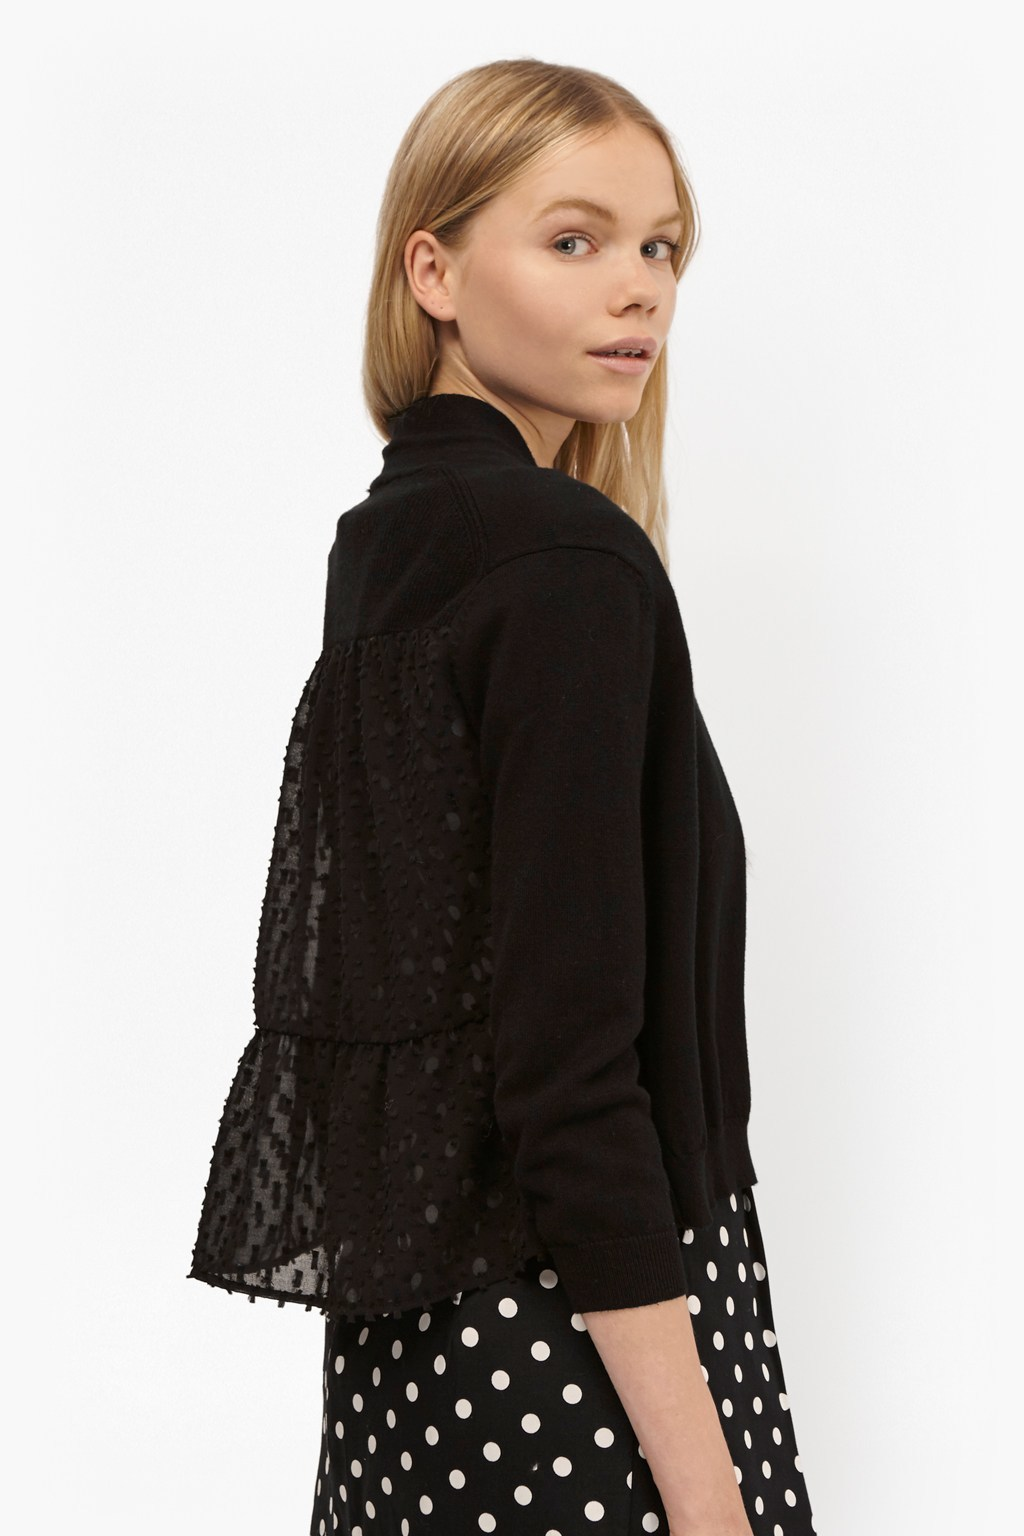 Bow Fringe Cropped Cardigan Black - pattern: plain; neckline: collarless open; style: open front; predominant colour: black; occasions: casual, creative work; length: standard; fibres: cotton - mix; fit: standard fit; sleeve length: 3/4 length; sleeve style: standard; texture group: knits/crochet; pattern type: knitted - fine stitch; season: s/s 2016; wardrobe: basic